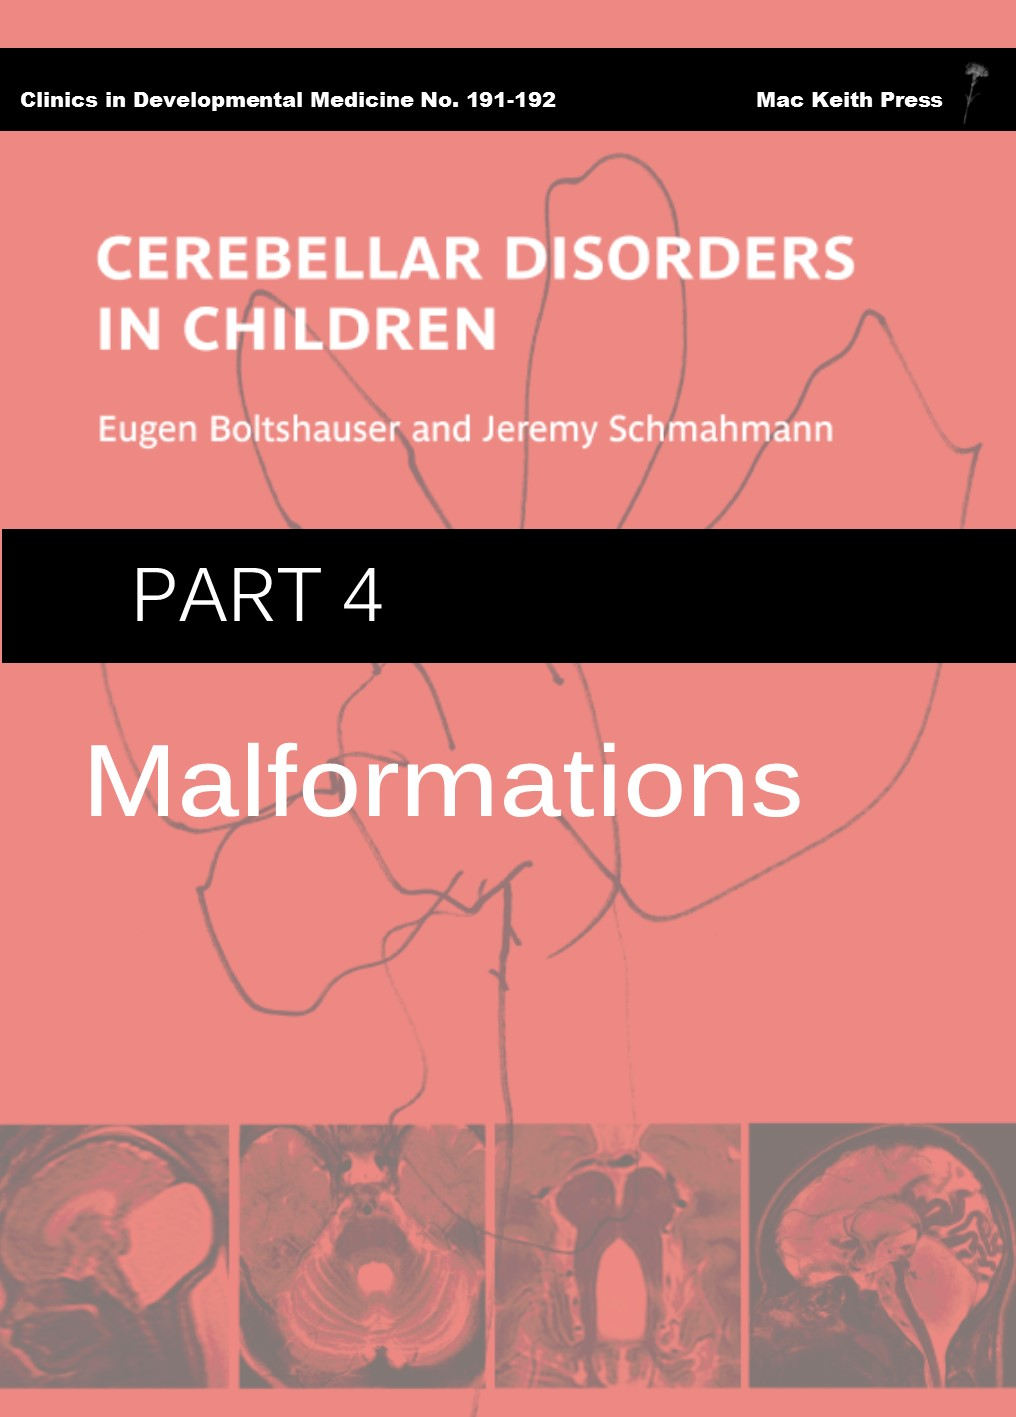 Cerebellar Disorders in Children - Part 4 Malformations COVER